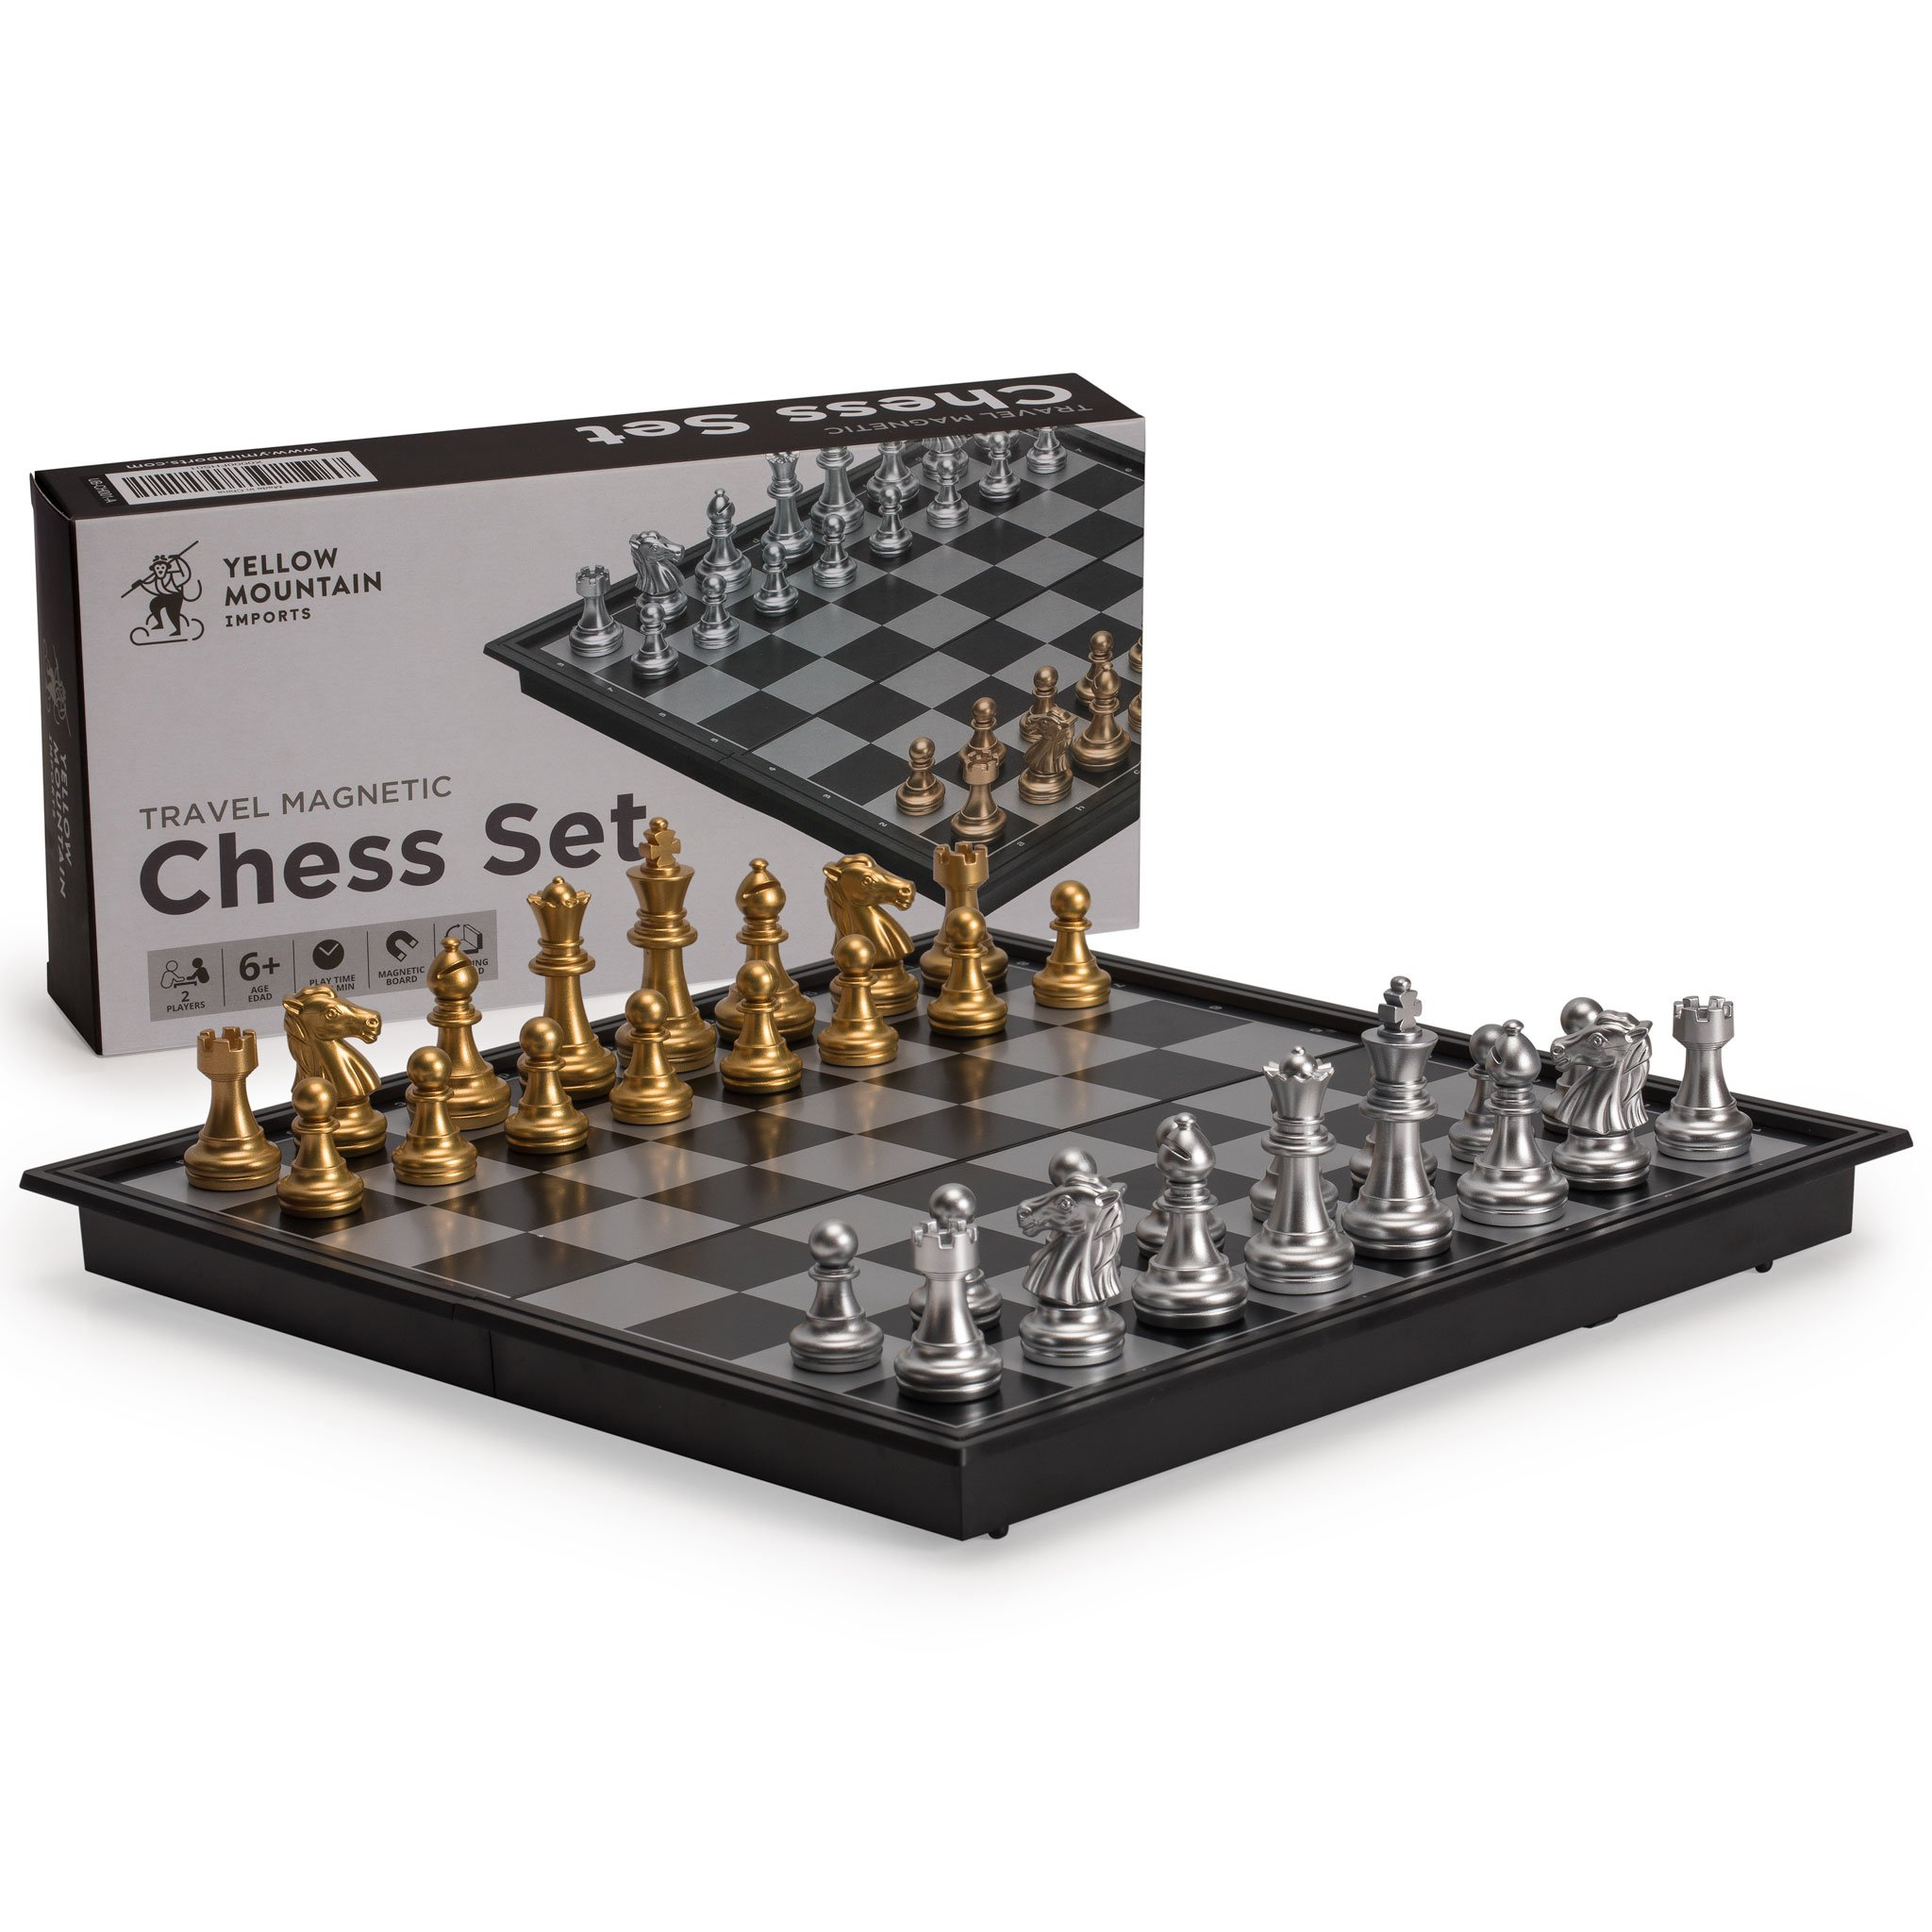 Yellow Mountain Imports Magnetic Travel Chess Set (9.7 Inches) - Portable - Perfectly Travel-Sized - Complete Playing Pieces Included in Set by Yellow Mountain Imports